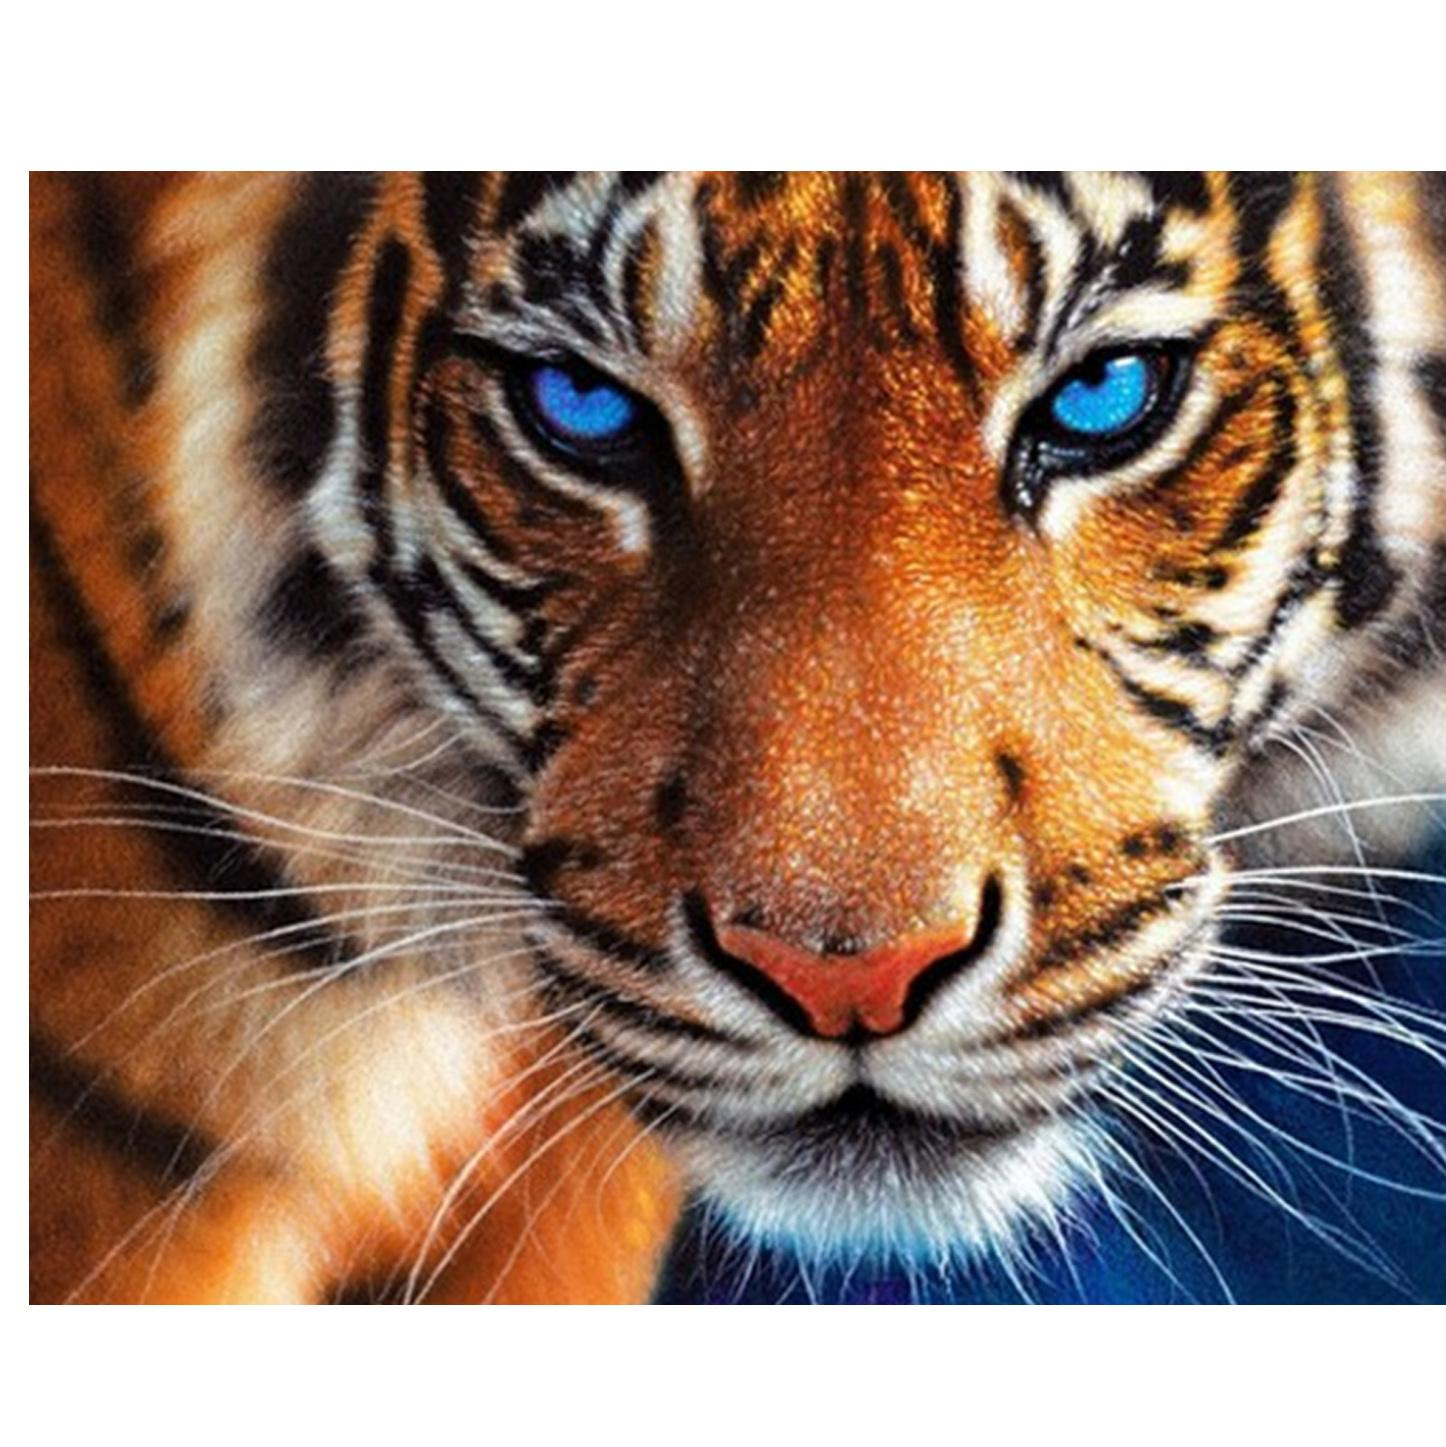 DIY Diamant Stickerei Der wilde Tiger Cross Stitch Rhinestone klebte Malerei Home Decor beste Geschenk 50x40cm HWB-541